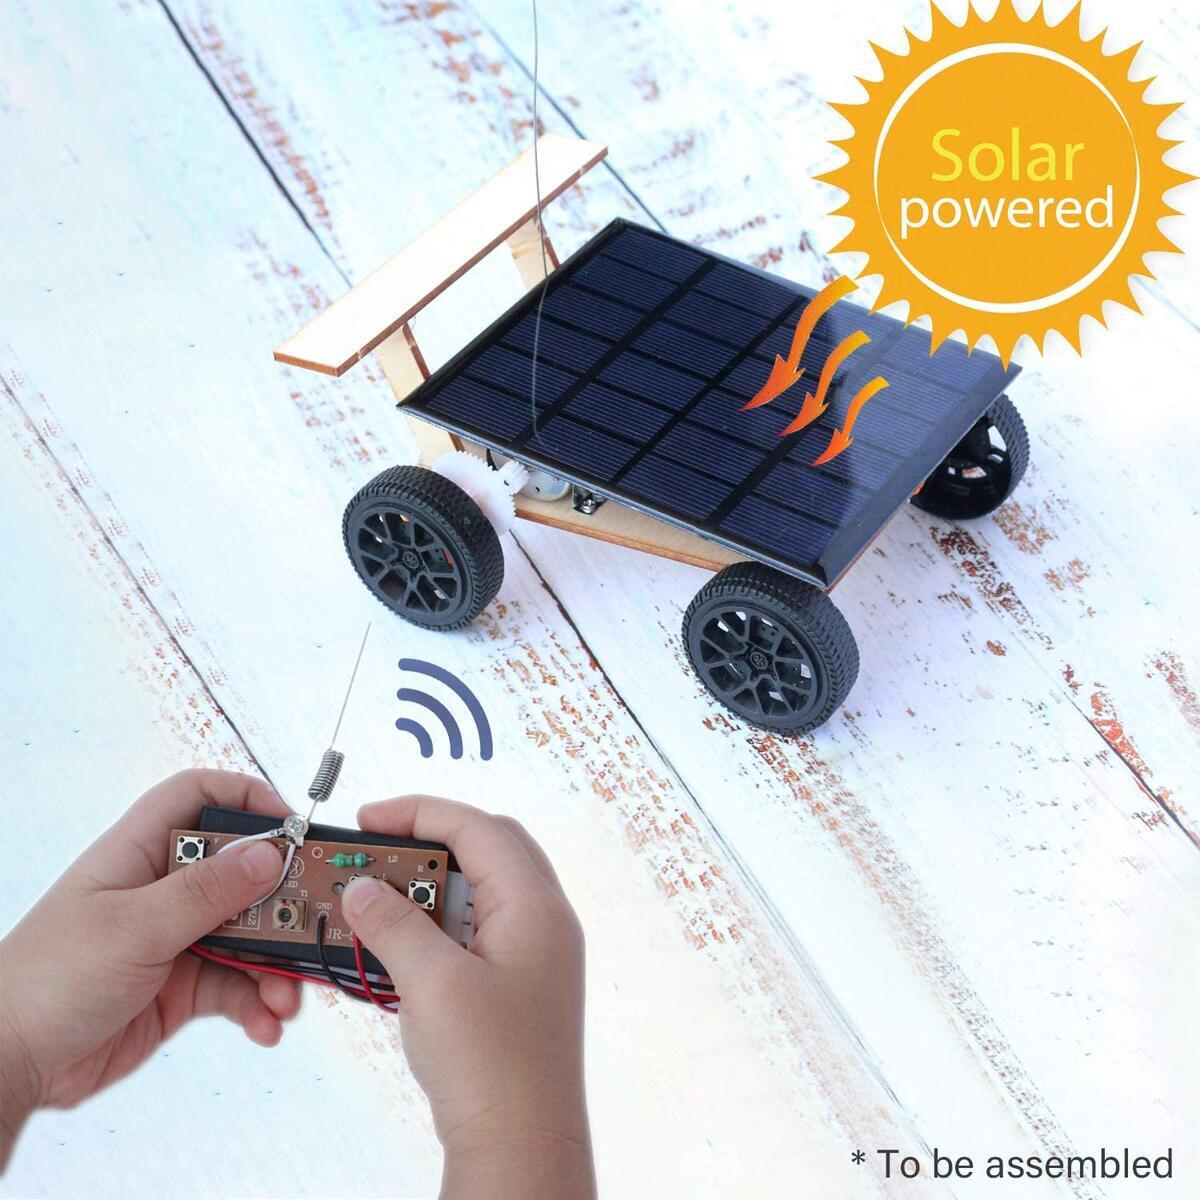 Pica Toys New Wooden Solar & Wireless Remote Control Car V2 Robotics Creative Engineering Circuit Science Stem Building Kit - Electric Motor DIY Experiment for Kids, Teens and Adults